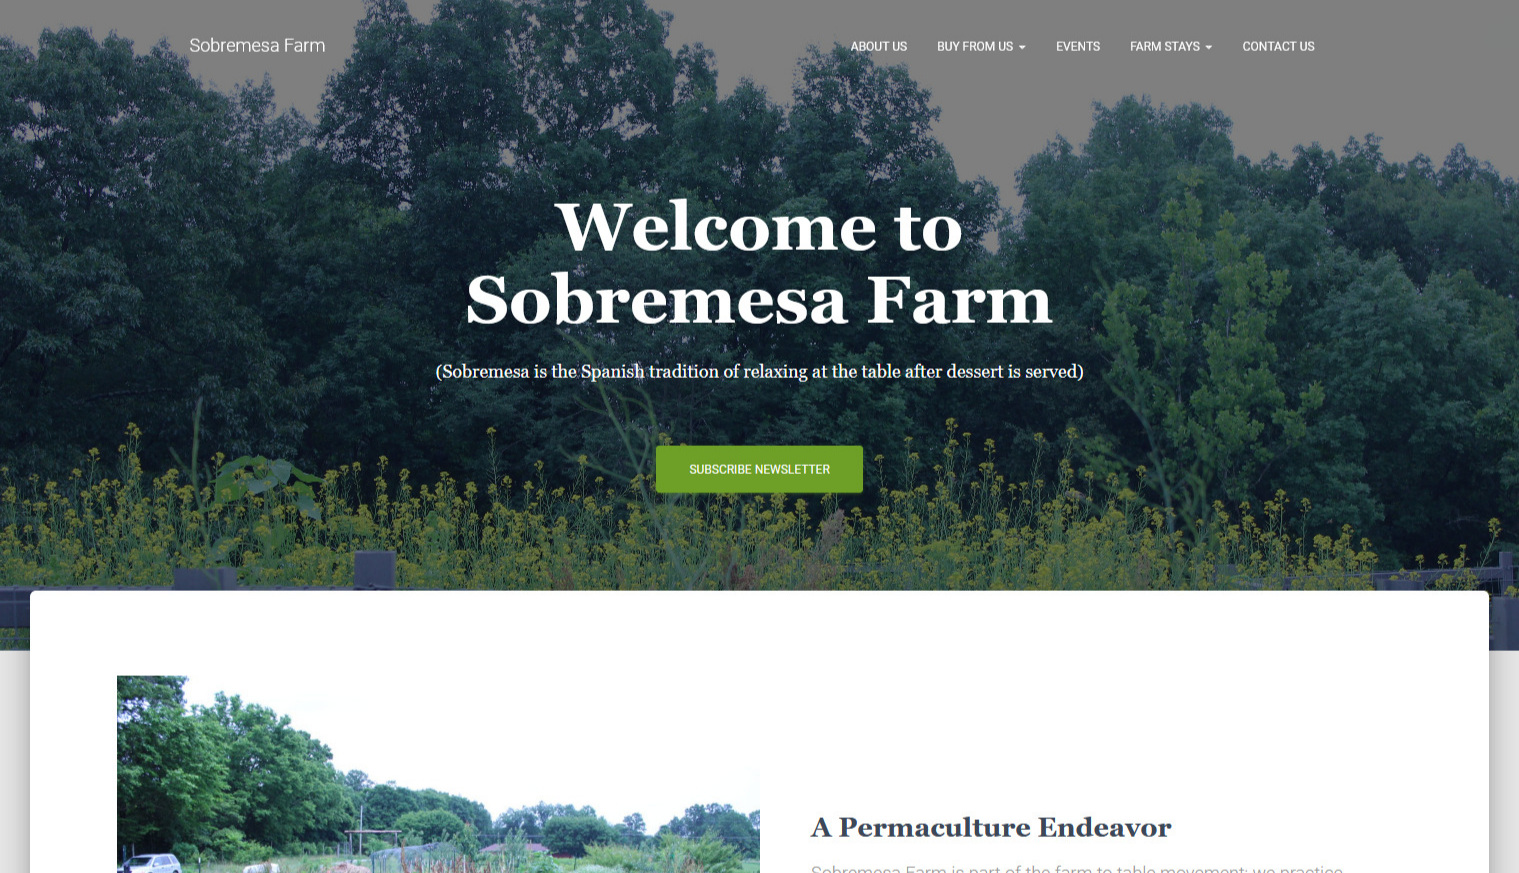 After - Now, the Sobremesa Farm has been re-designed into a portolio-style website which introduces its history, culture, and products. Furthermore, customers can leave their email to get the newsletter regularly, and the website now provides Square online payment system so that customers have an easier way to purchase goods.